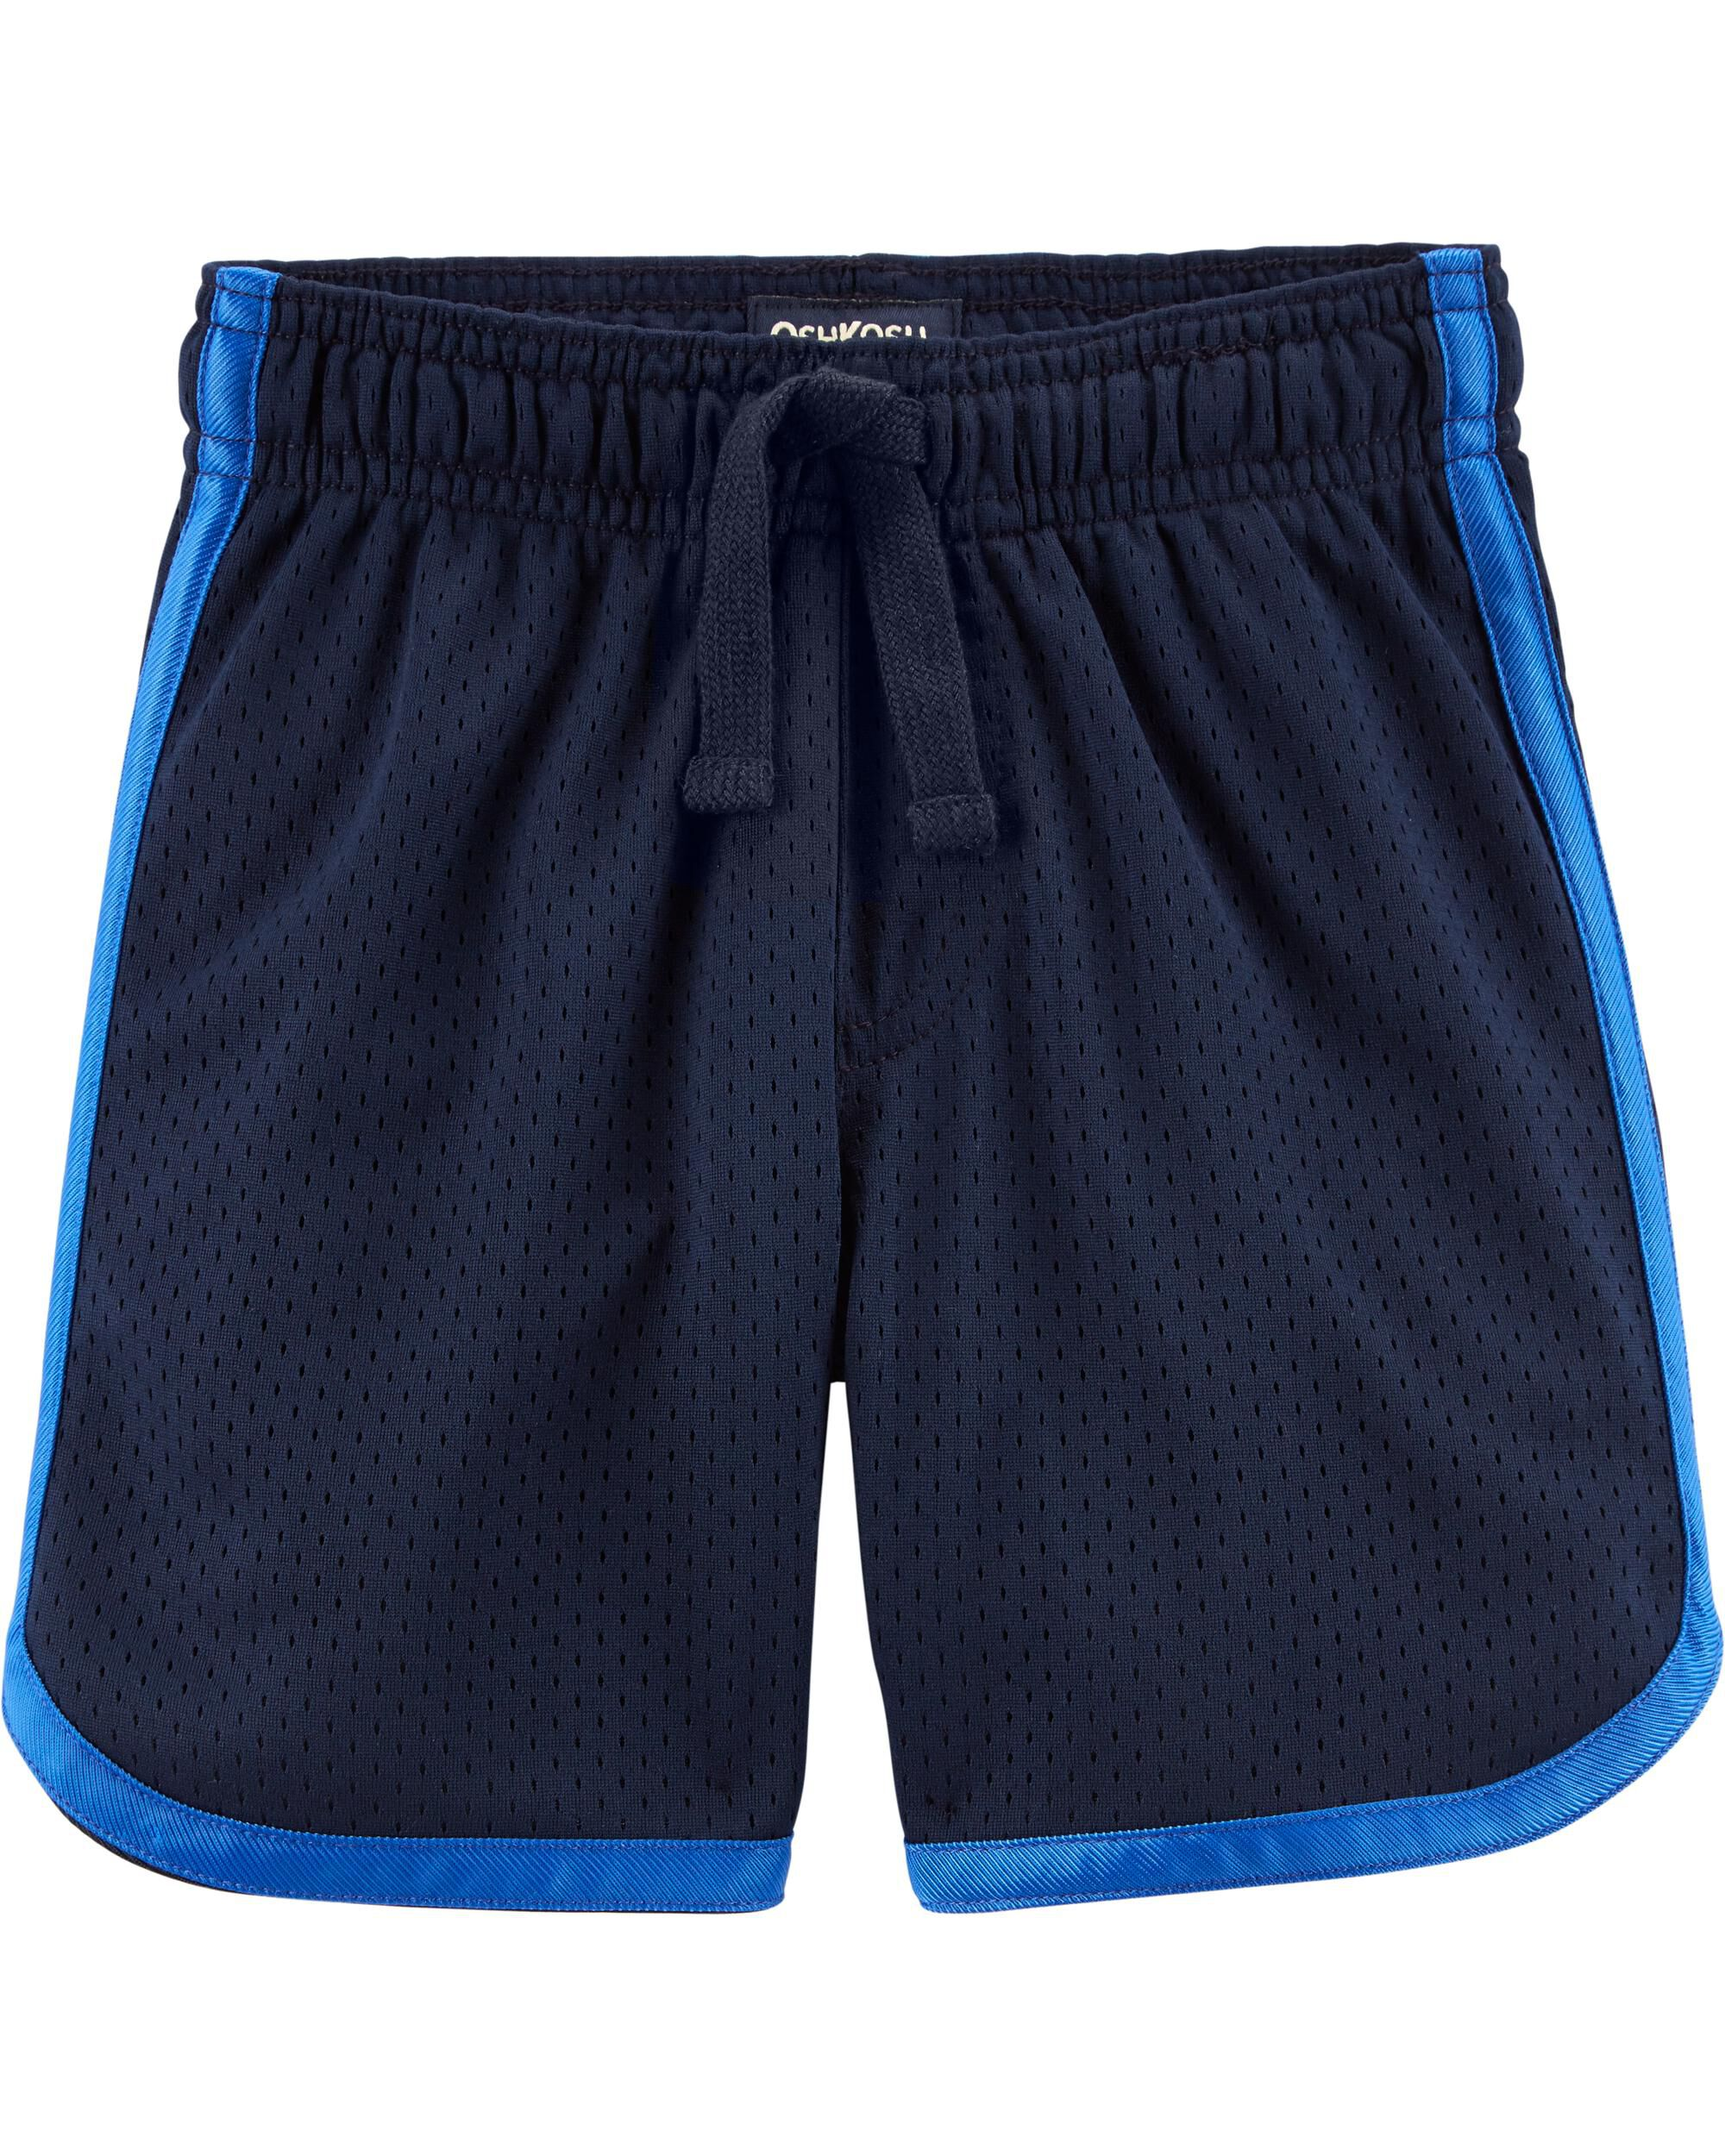 *Clearance*  Mesh Basketball Shorts